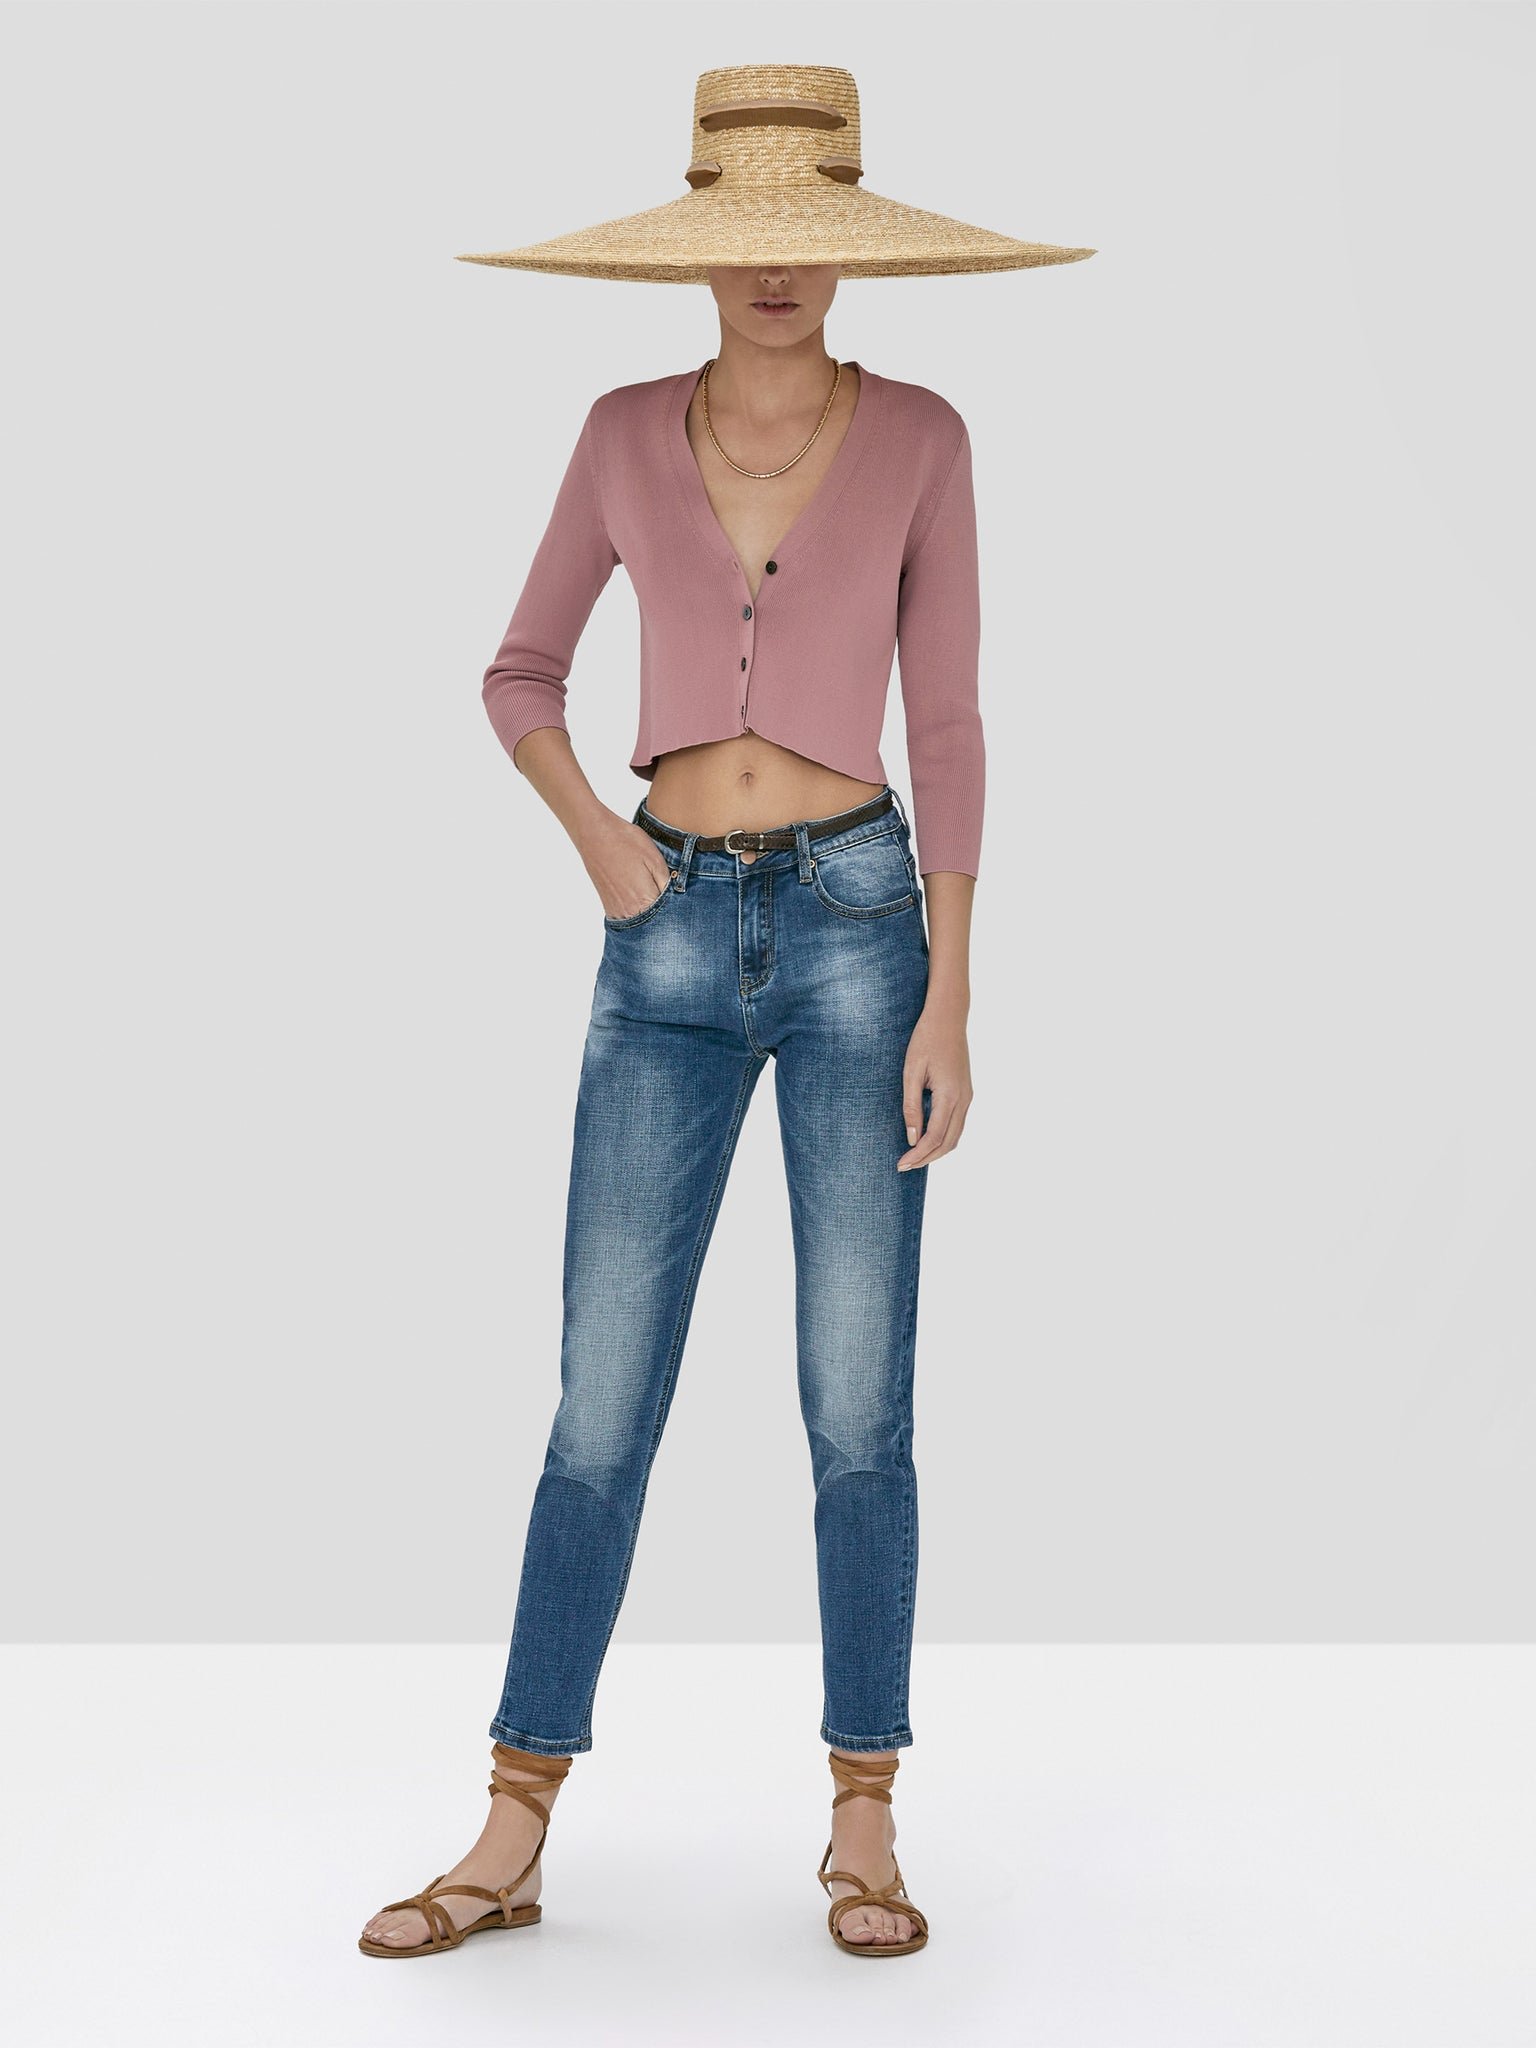 Alexis Petal Cardigan in Rose and Holston Denim Pant in Indigo Denim from Spring Summer 2020